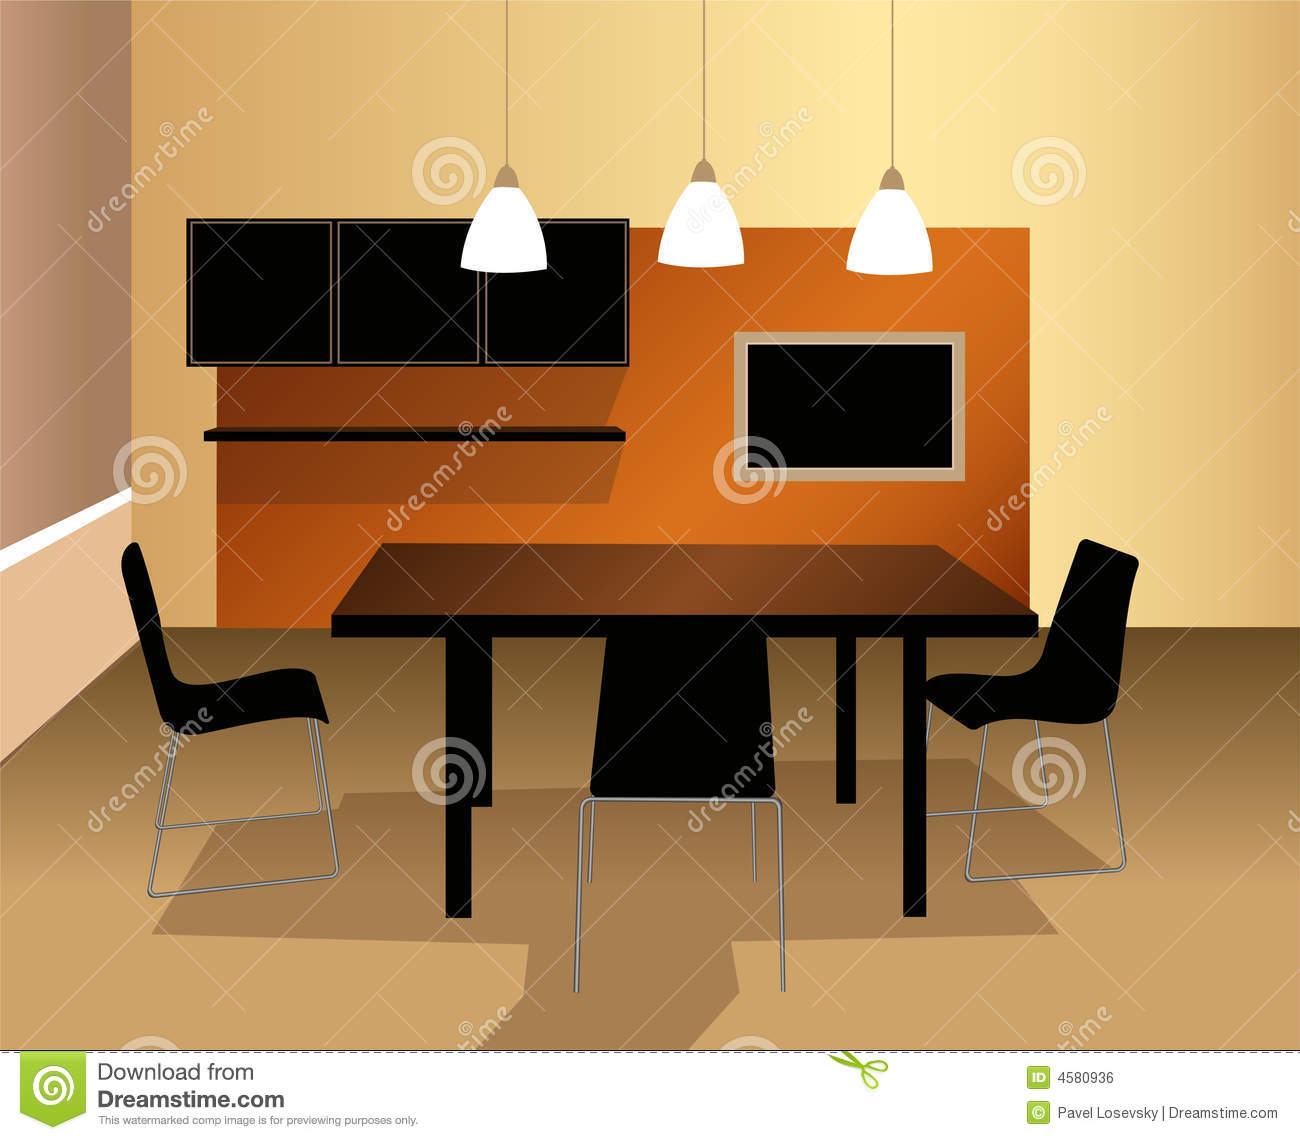 Best Dining Table Illustrations Royalty Free Vector: Dining Room Vector Royalty Free Stock Image